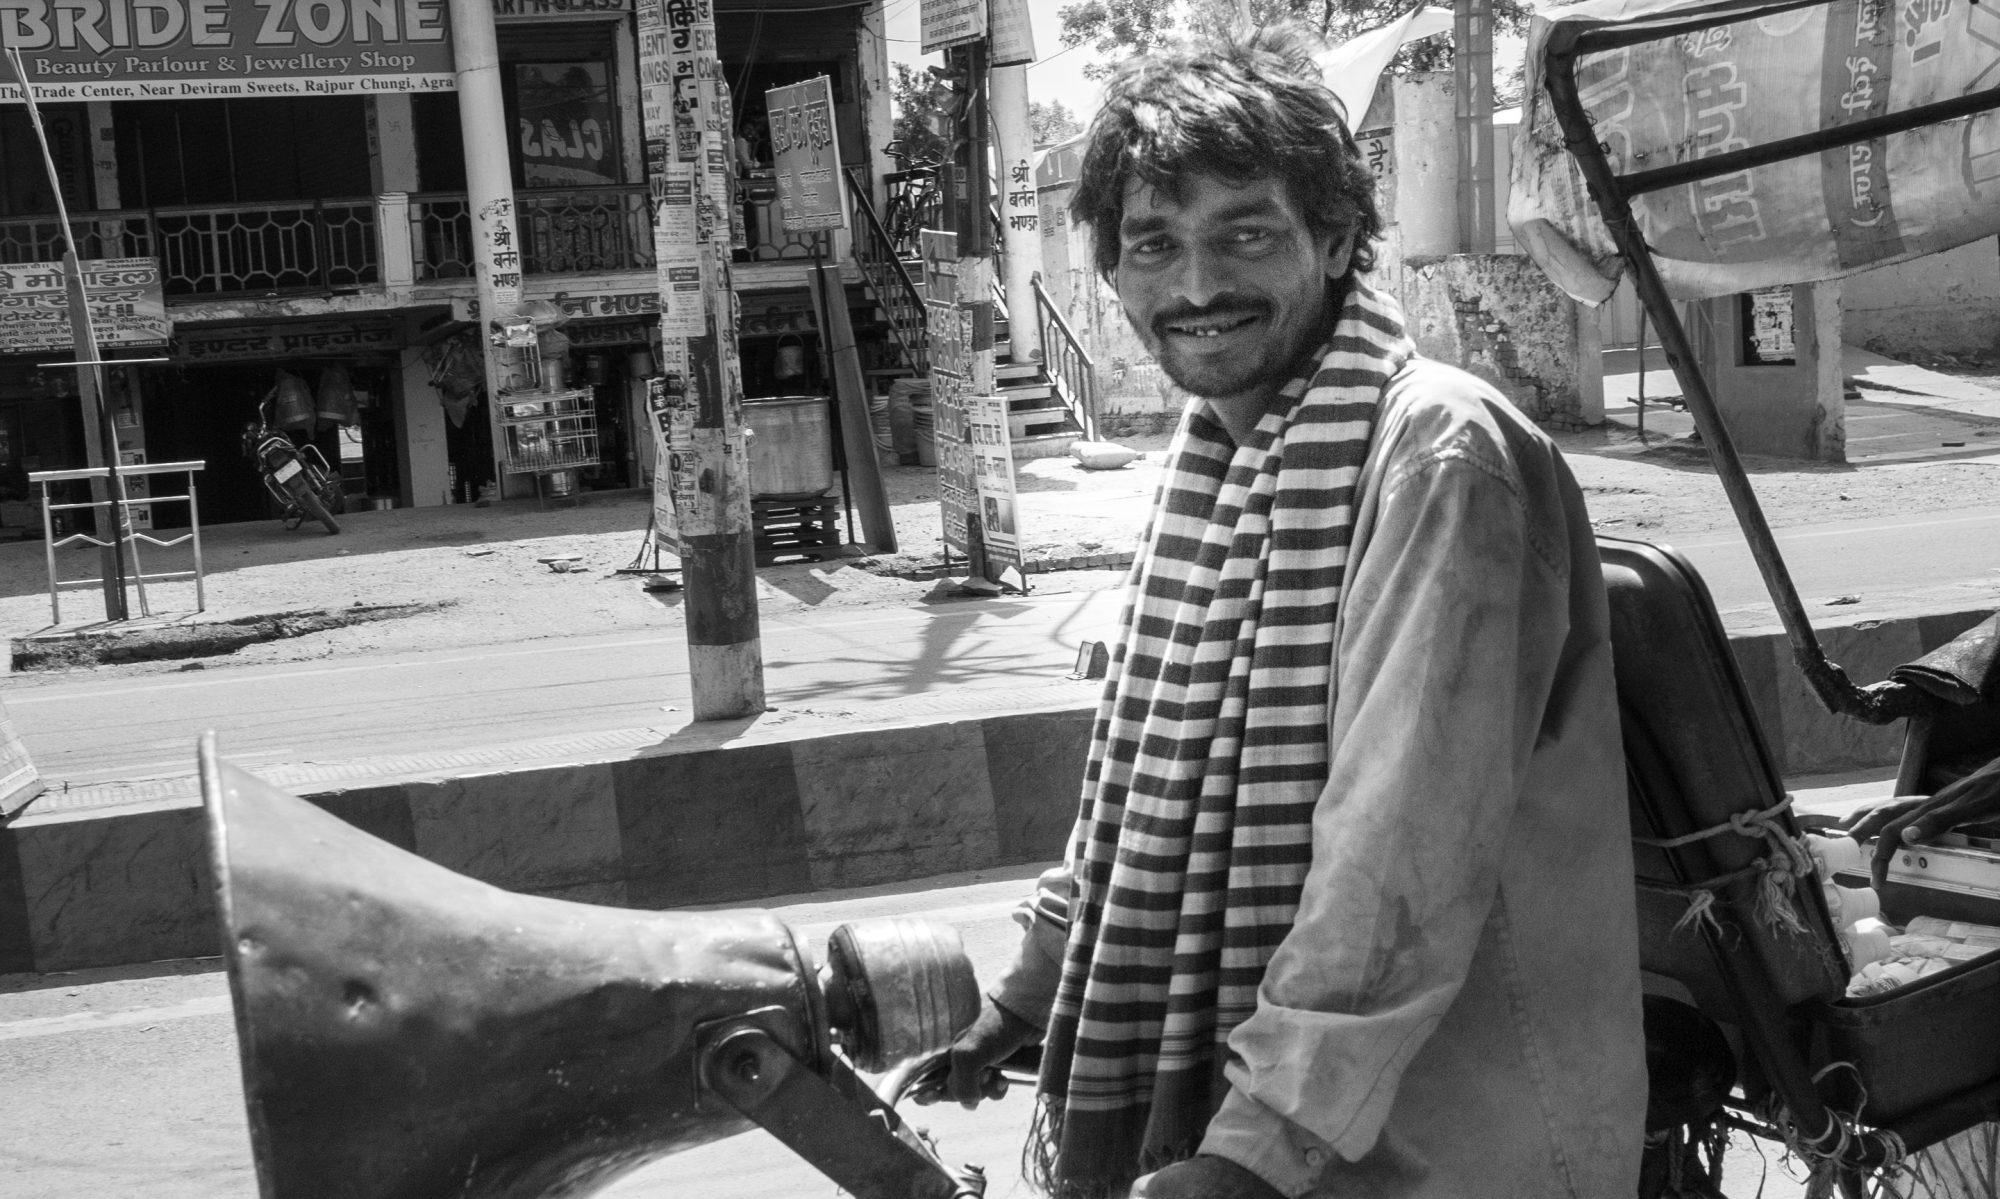 People I met in India